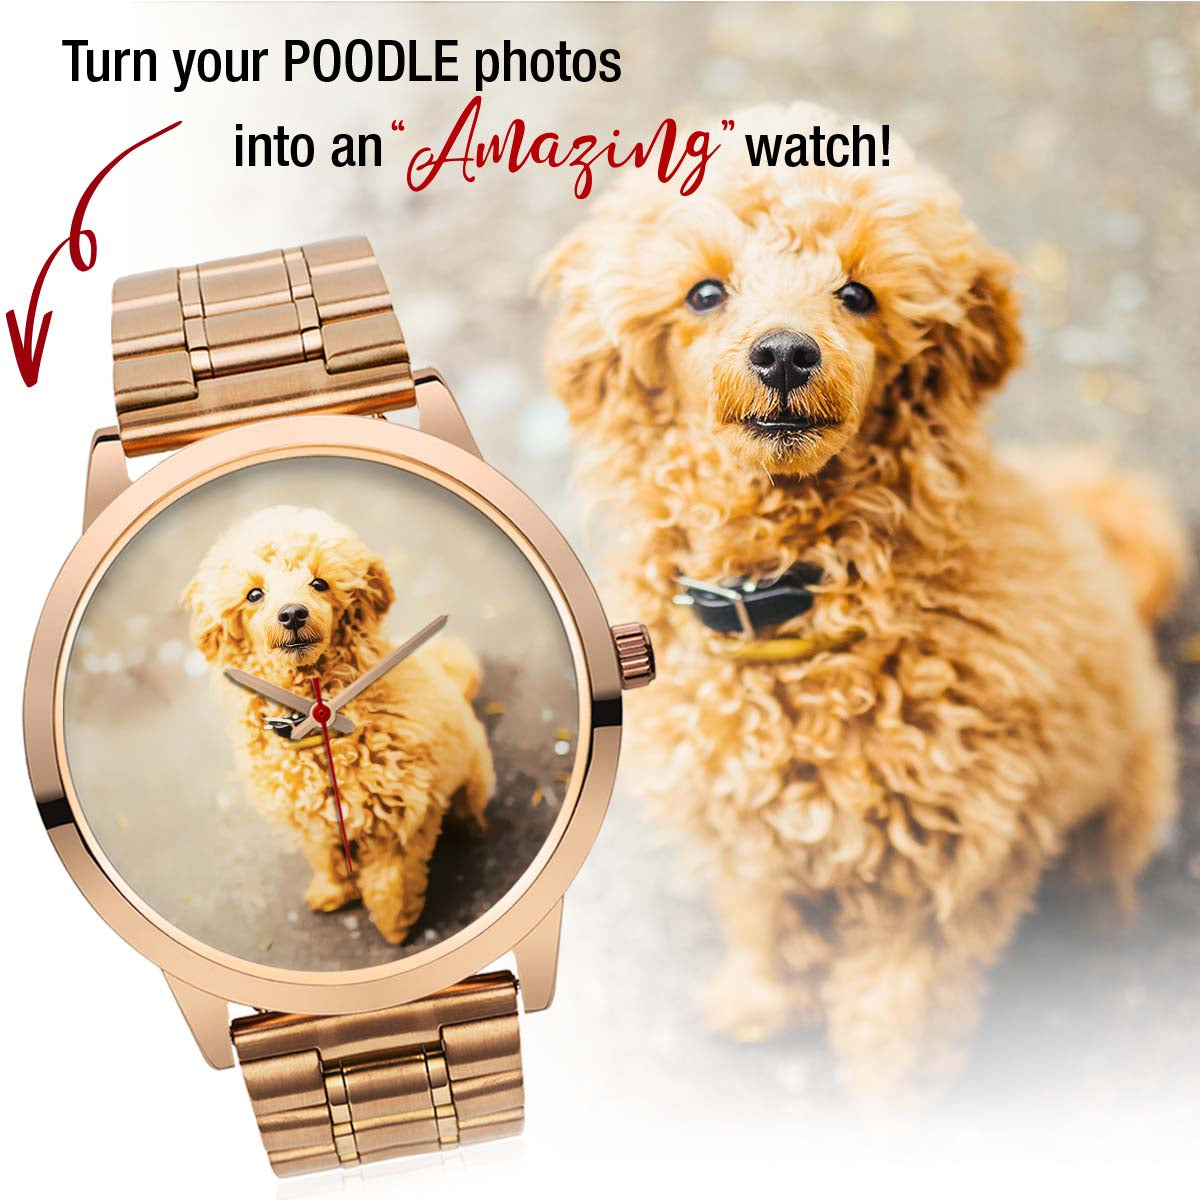 PERSONALIZED watch - upload your POODLE photos